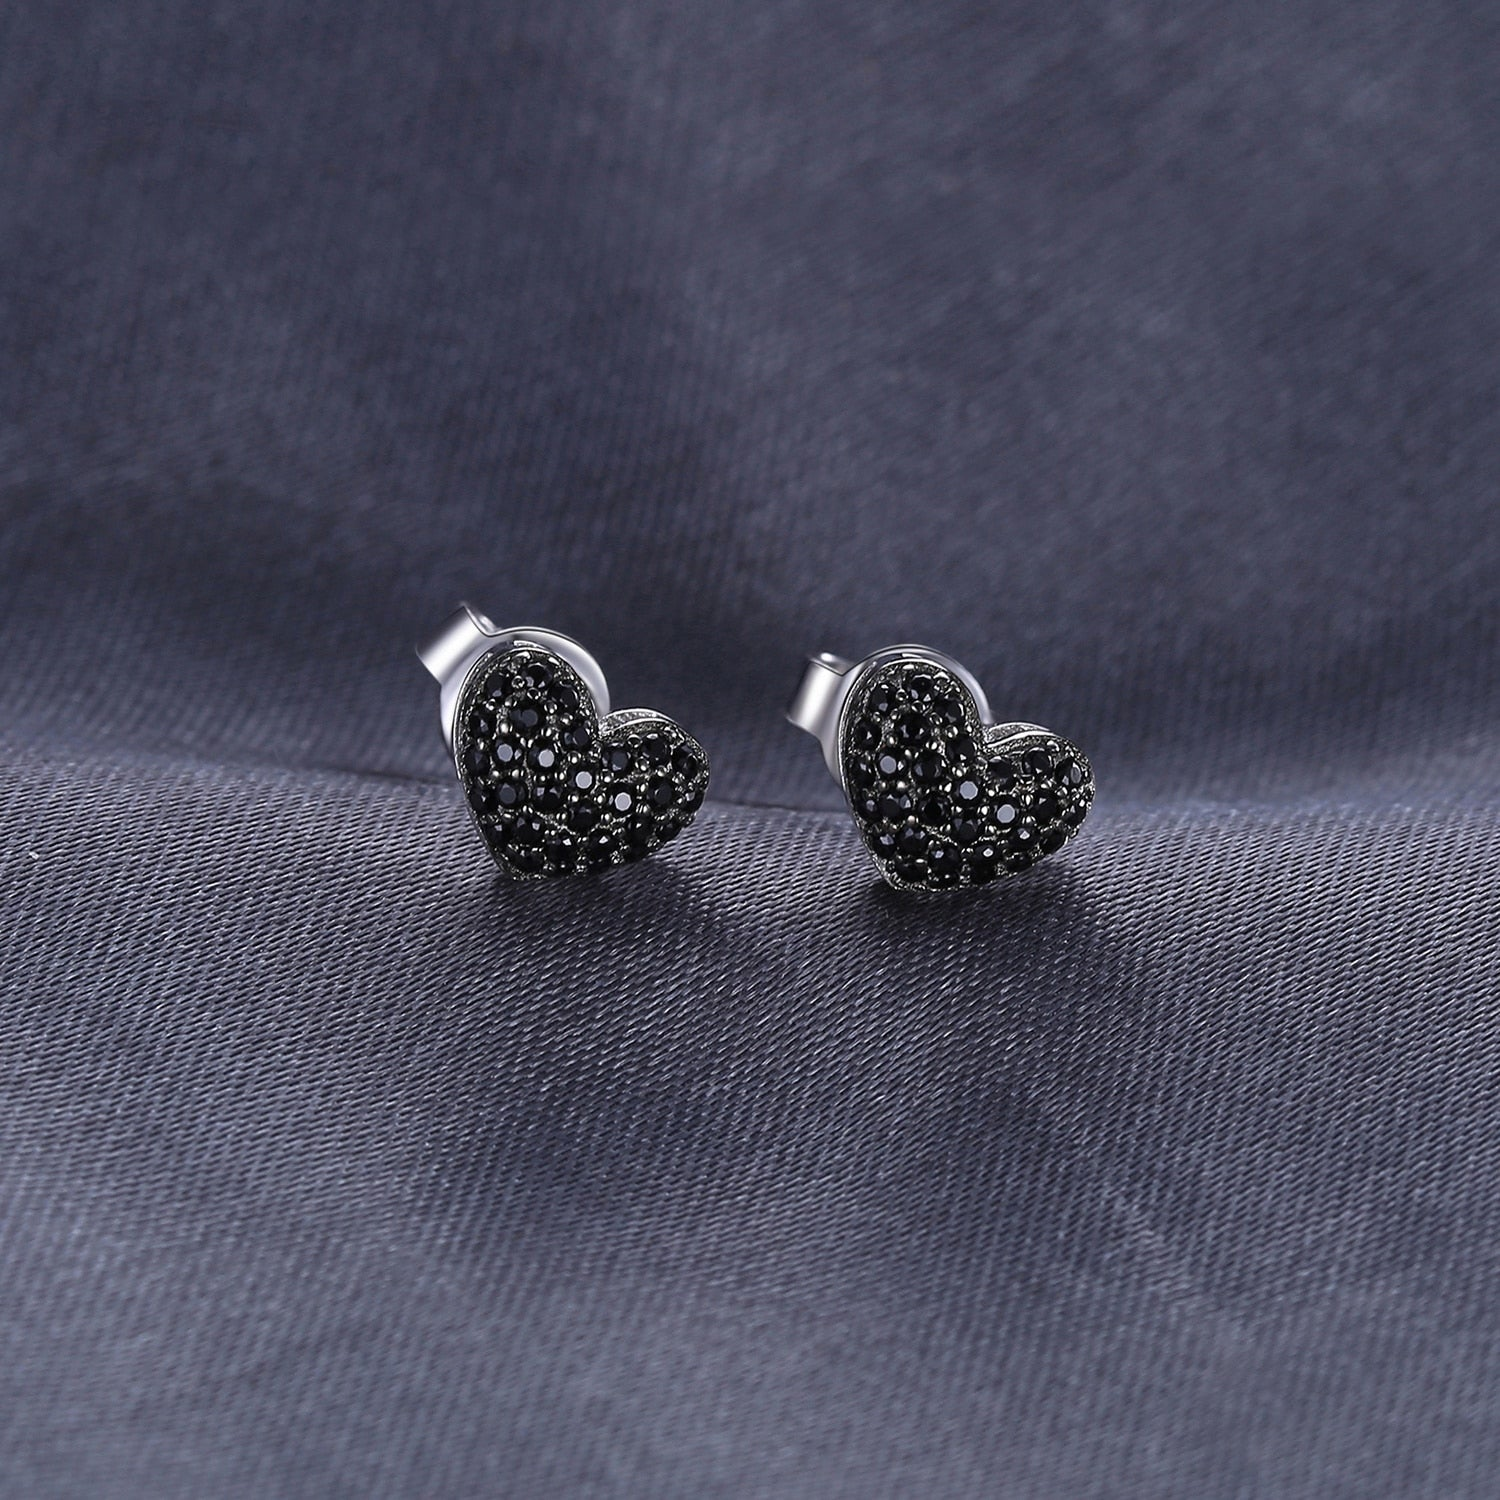 Love Heart Genuine Black Spinel Stud Earrings - RHEA LIGHT